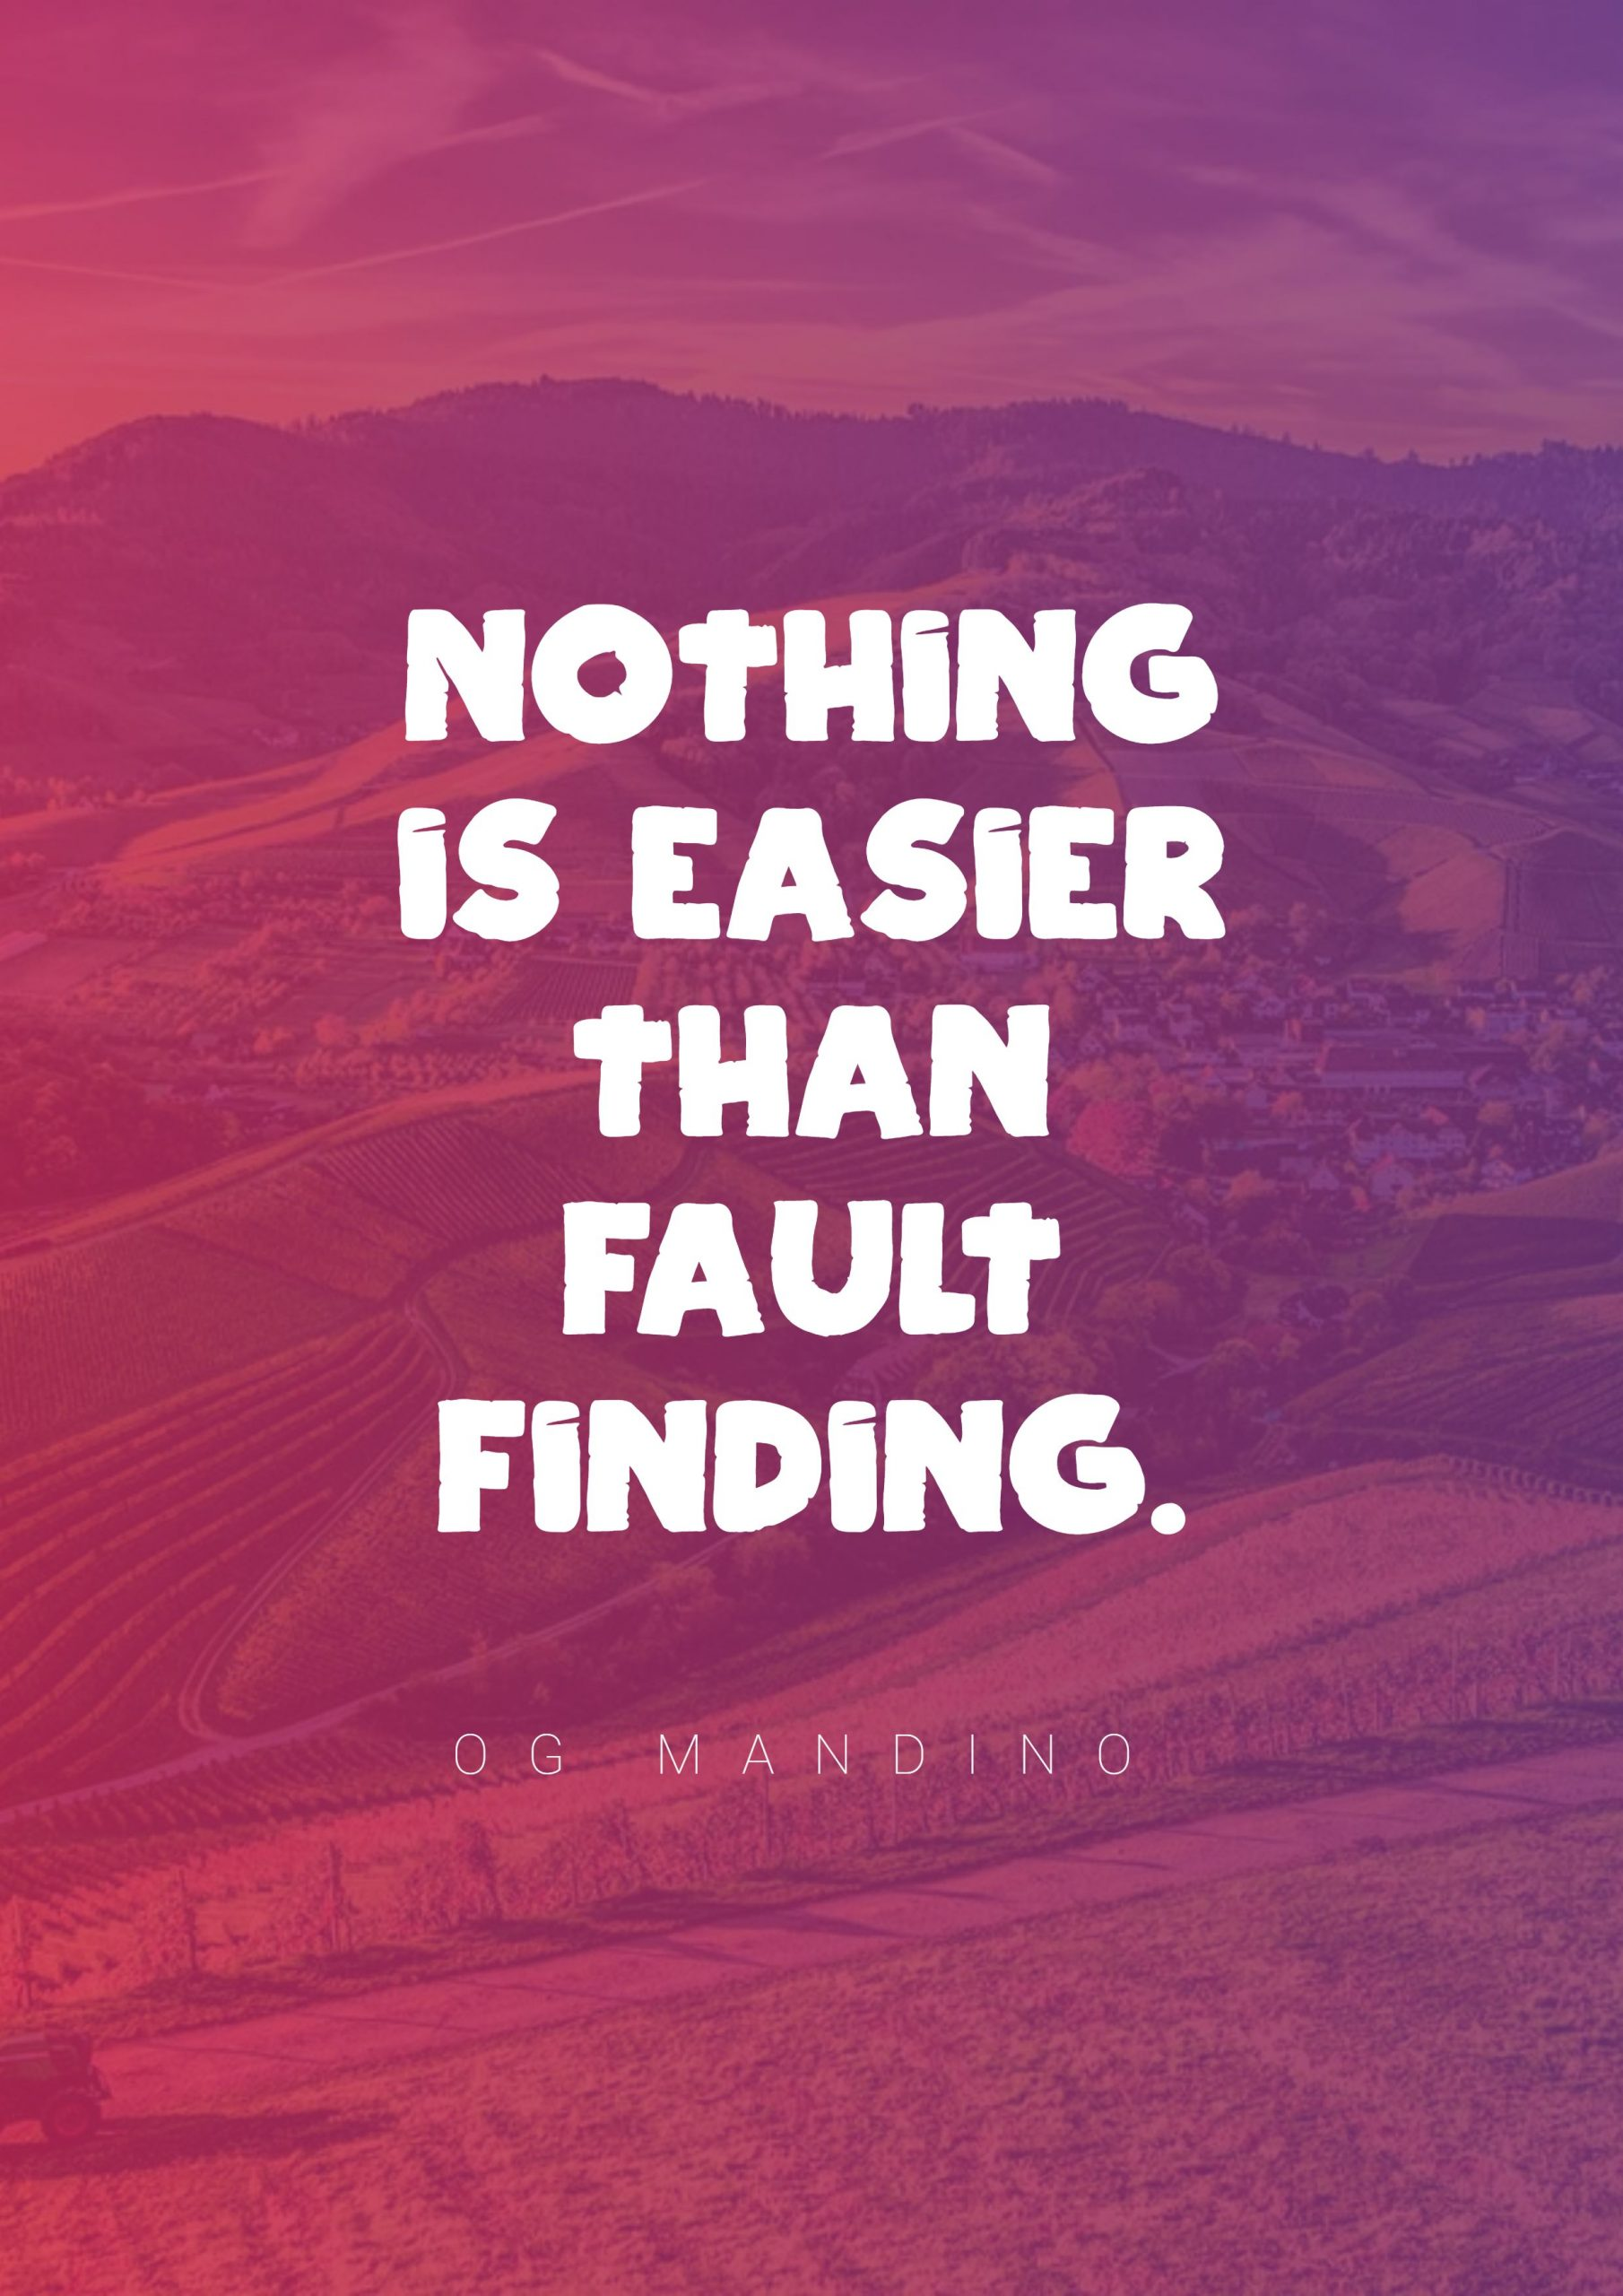 Quotes image of Nothing is easier than fault finding.